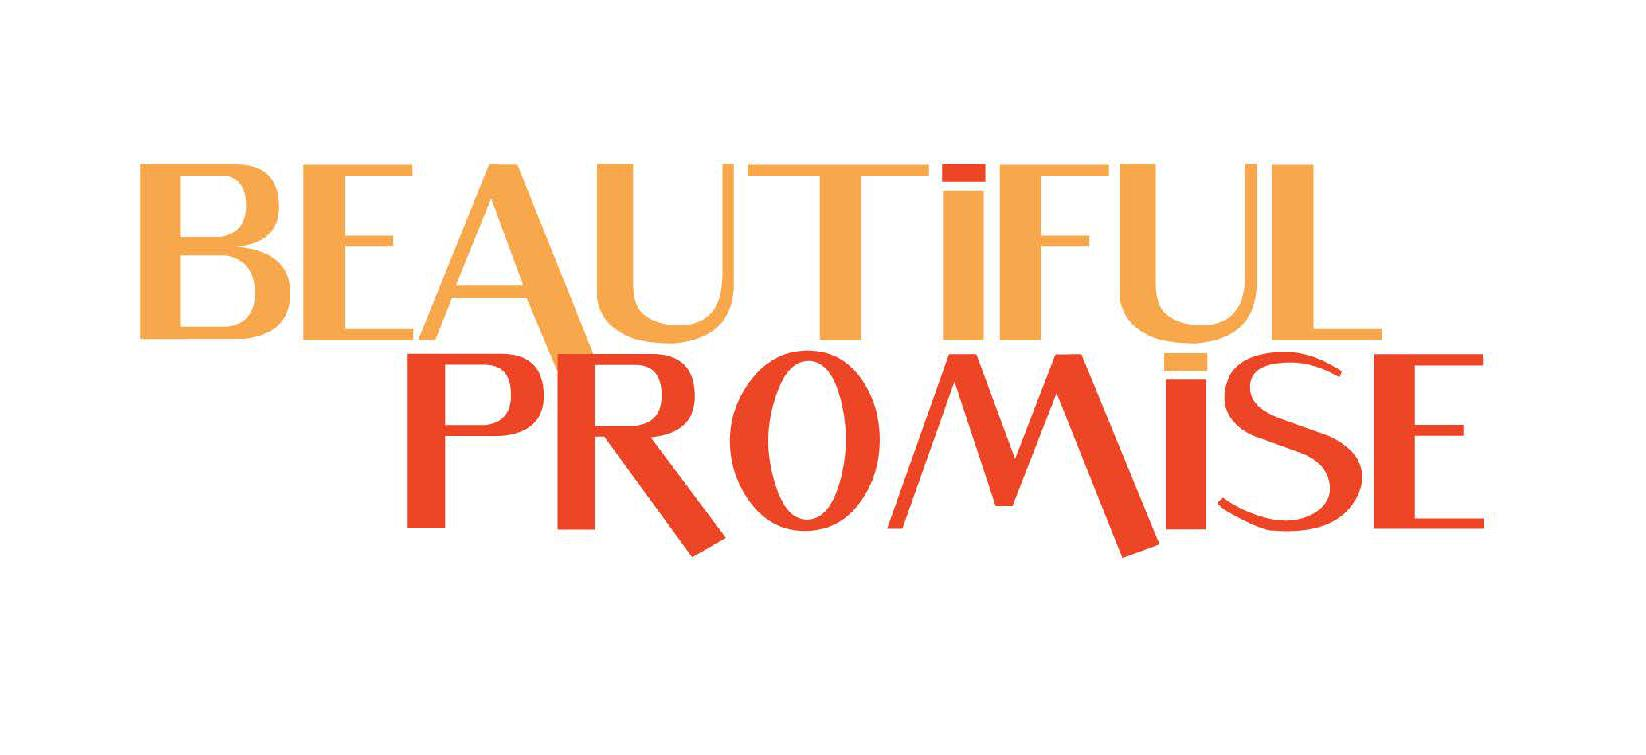 https://www.promise-project.org/promise2/volunteer/2019-beautiful-promise/